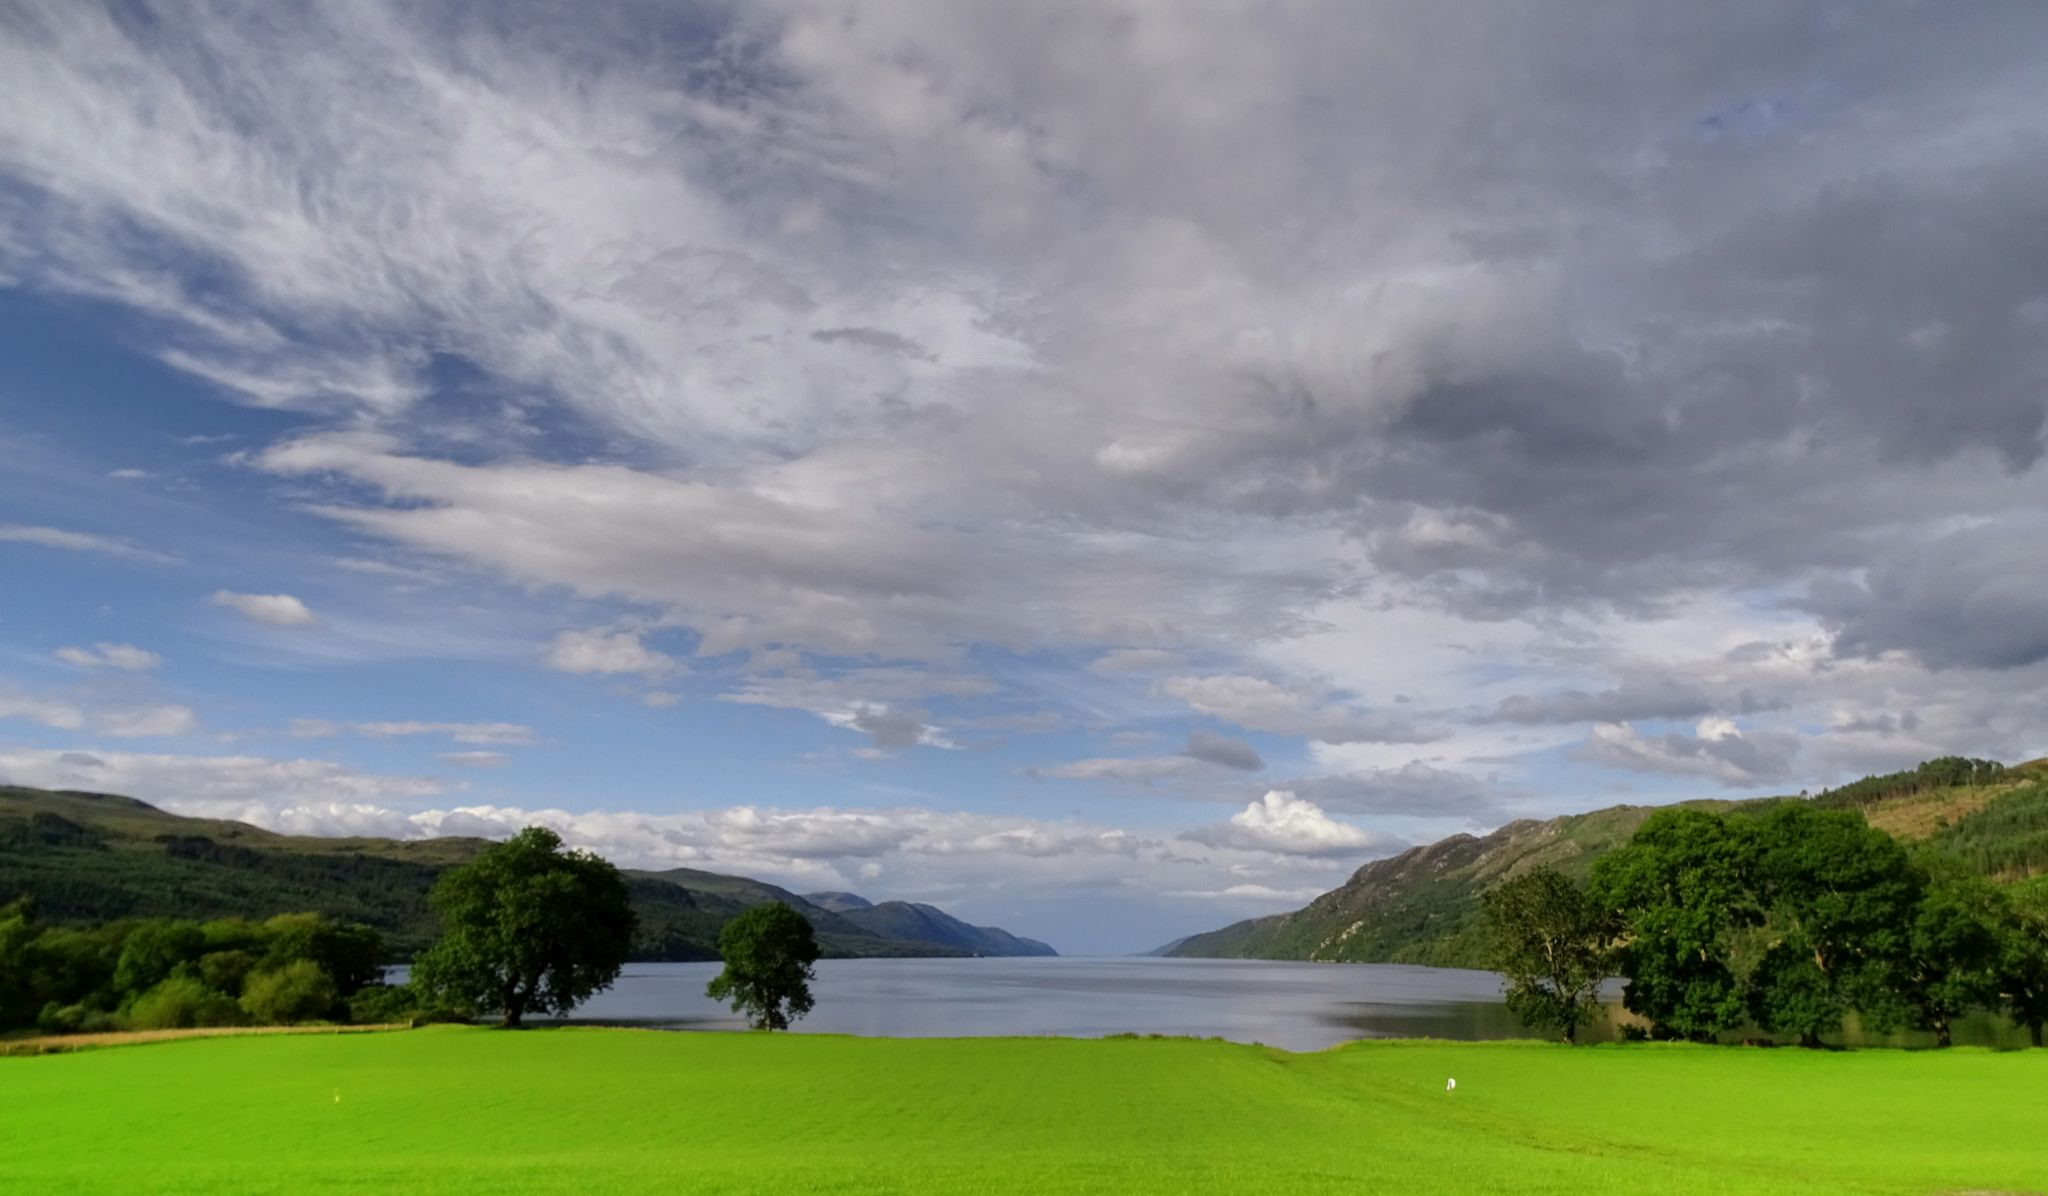 Loch Ness view from the Western point, United Kingdom